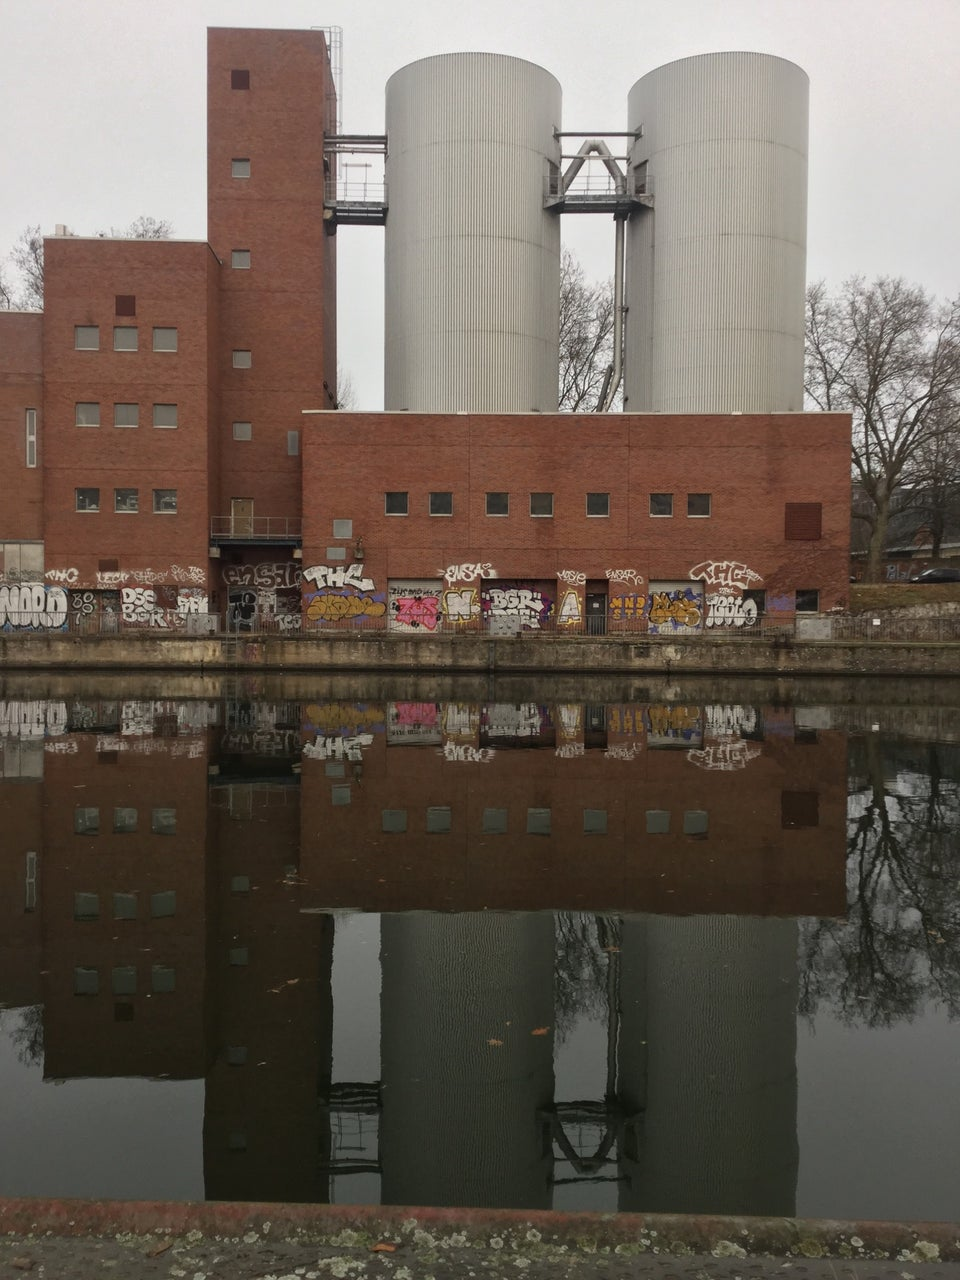 Industrial looking buildings including a couple of silos, under an overcast sky, with the river Spree in front of them reflecting the buildings, the nearby shore barely visible at the bottom.